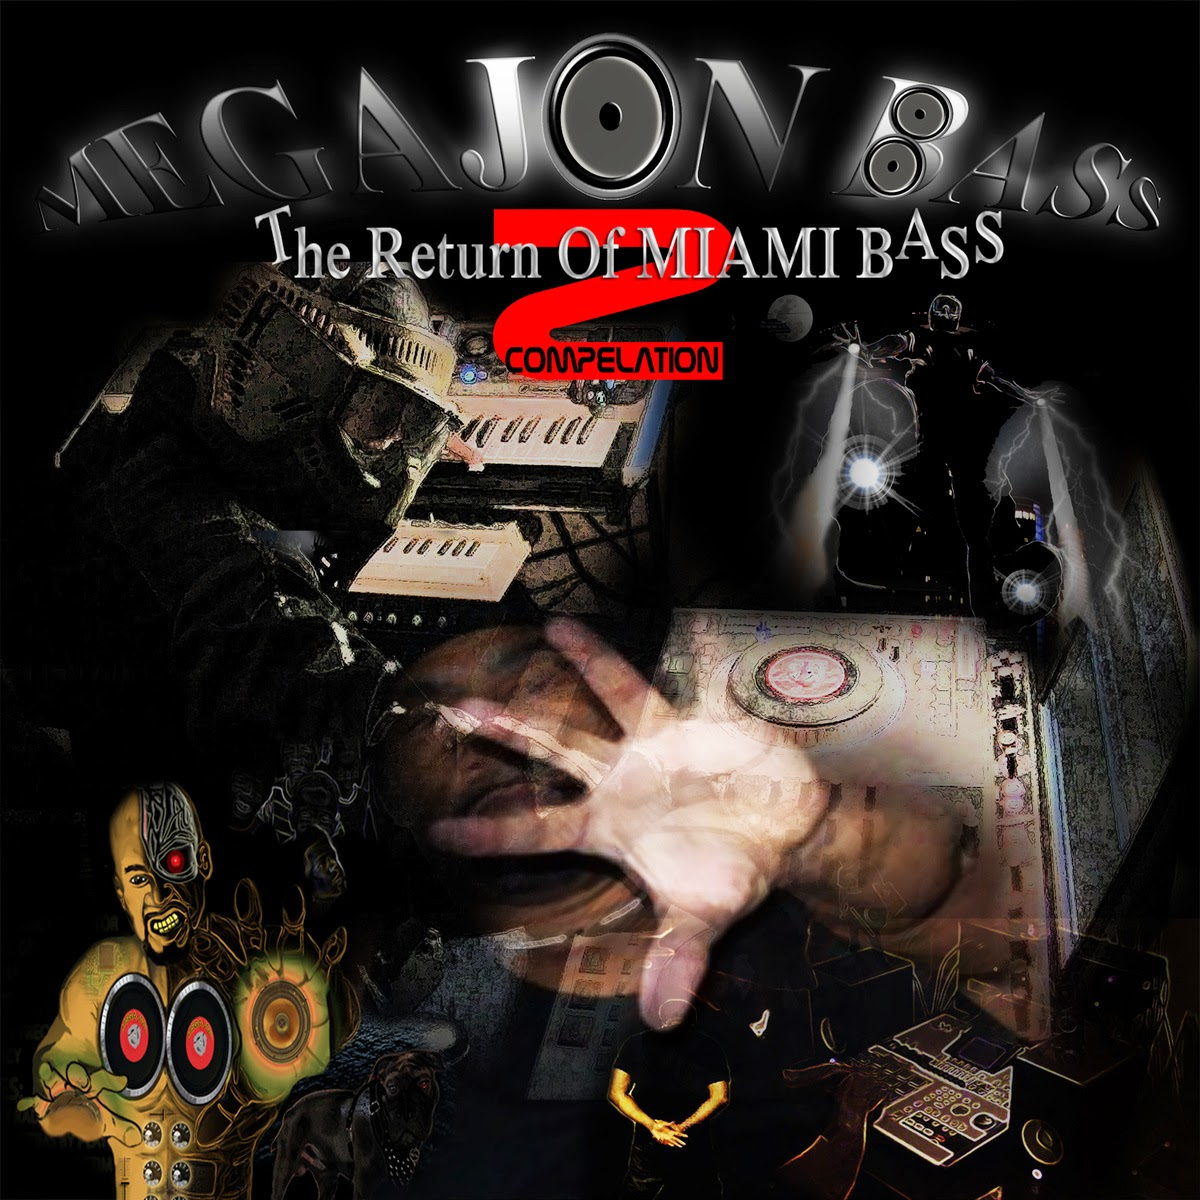 Megajon Bass - The Return Of Miami Bass 2 Compelation (2014)